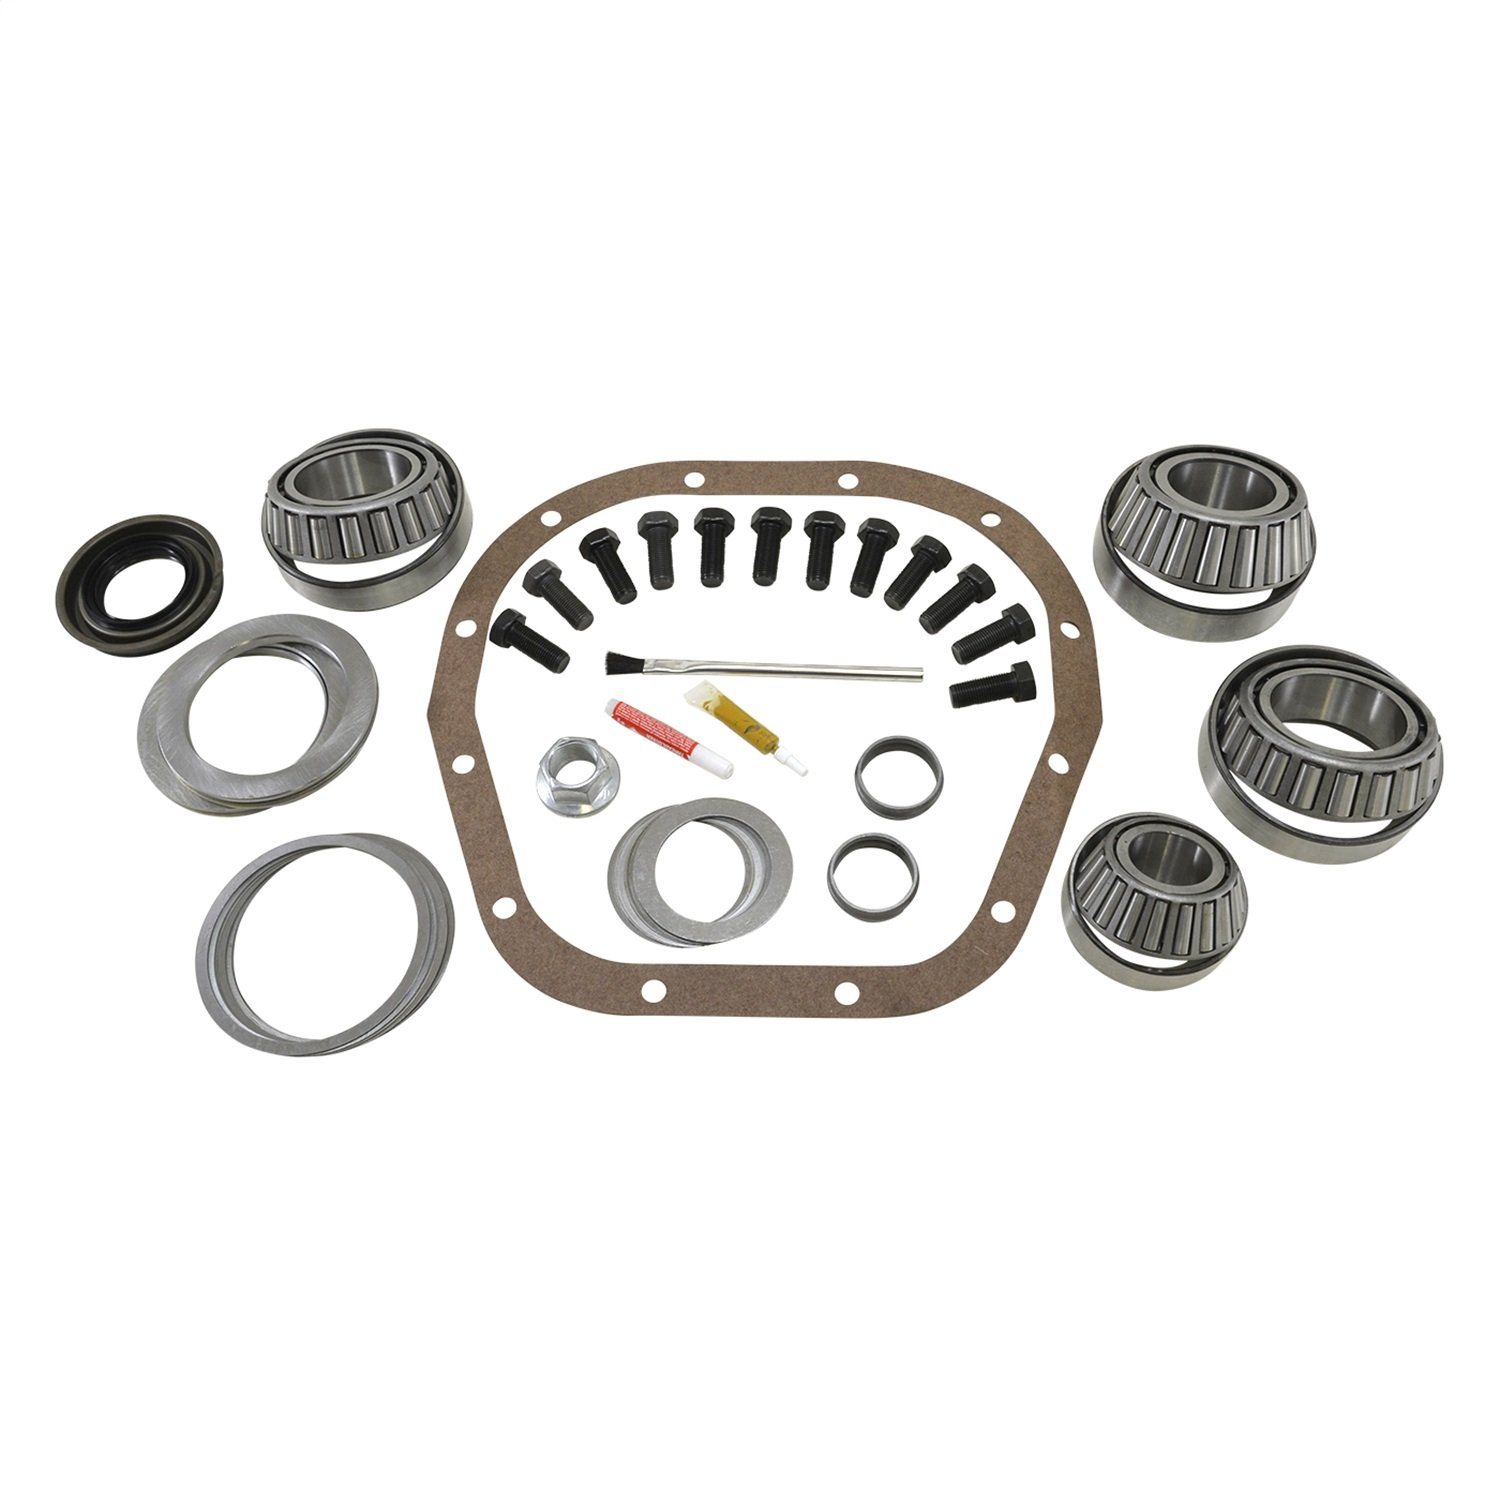 Yukon Gear /& Axle YK F10.25 Master Overhaul Kit for Ford 10.25 Differential